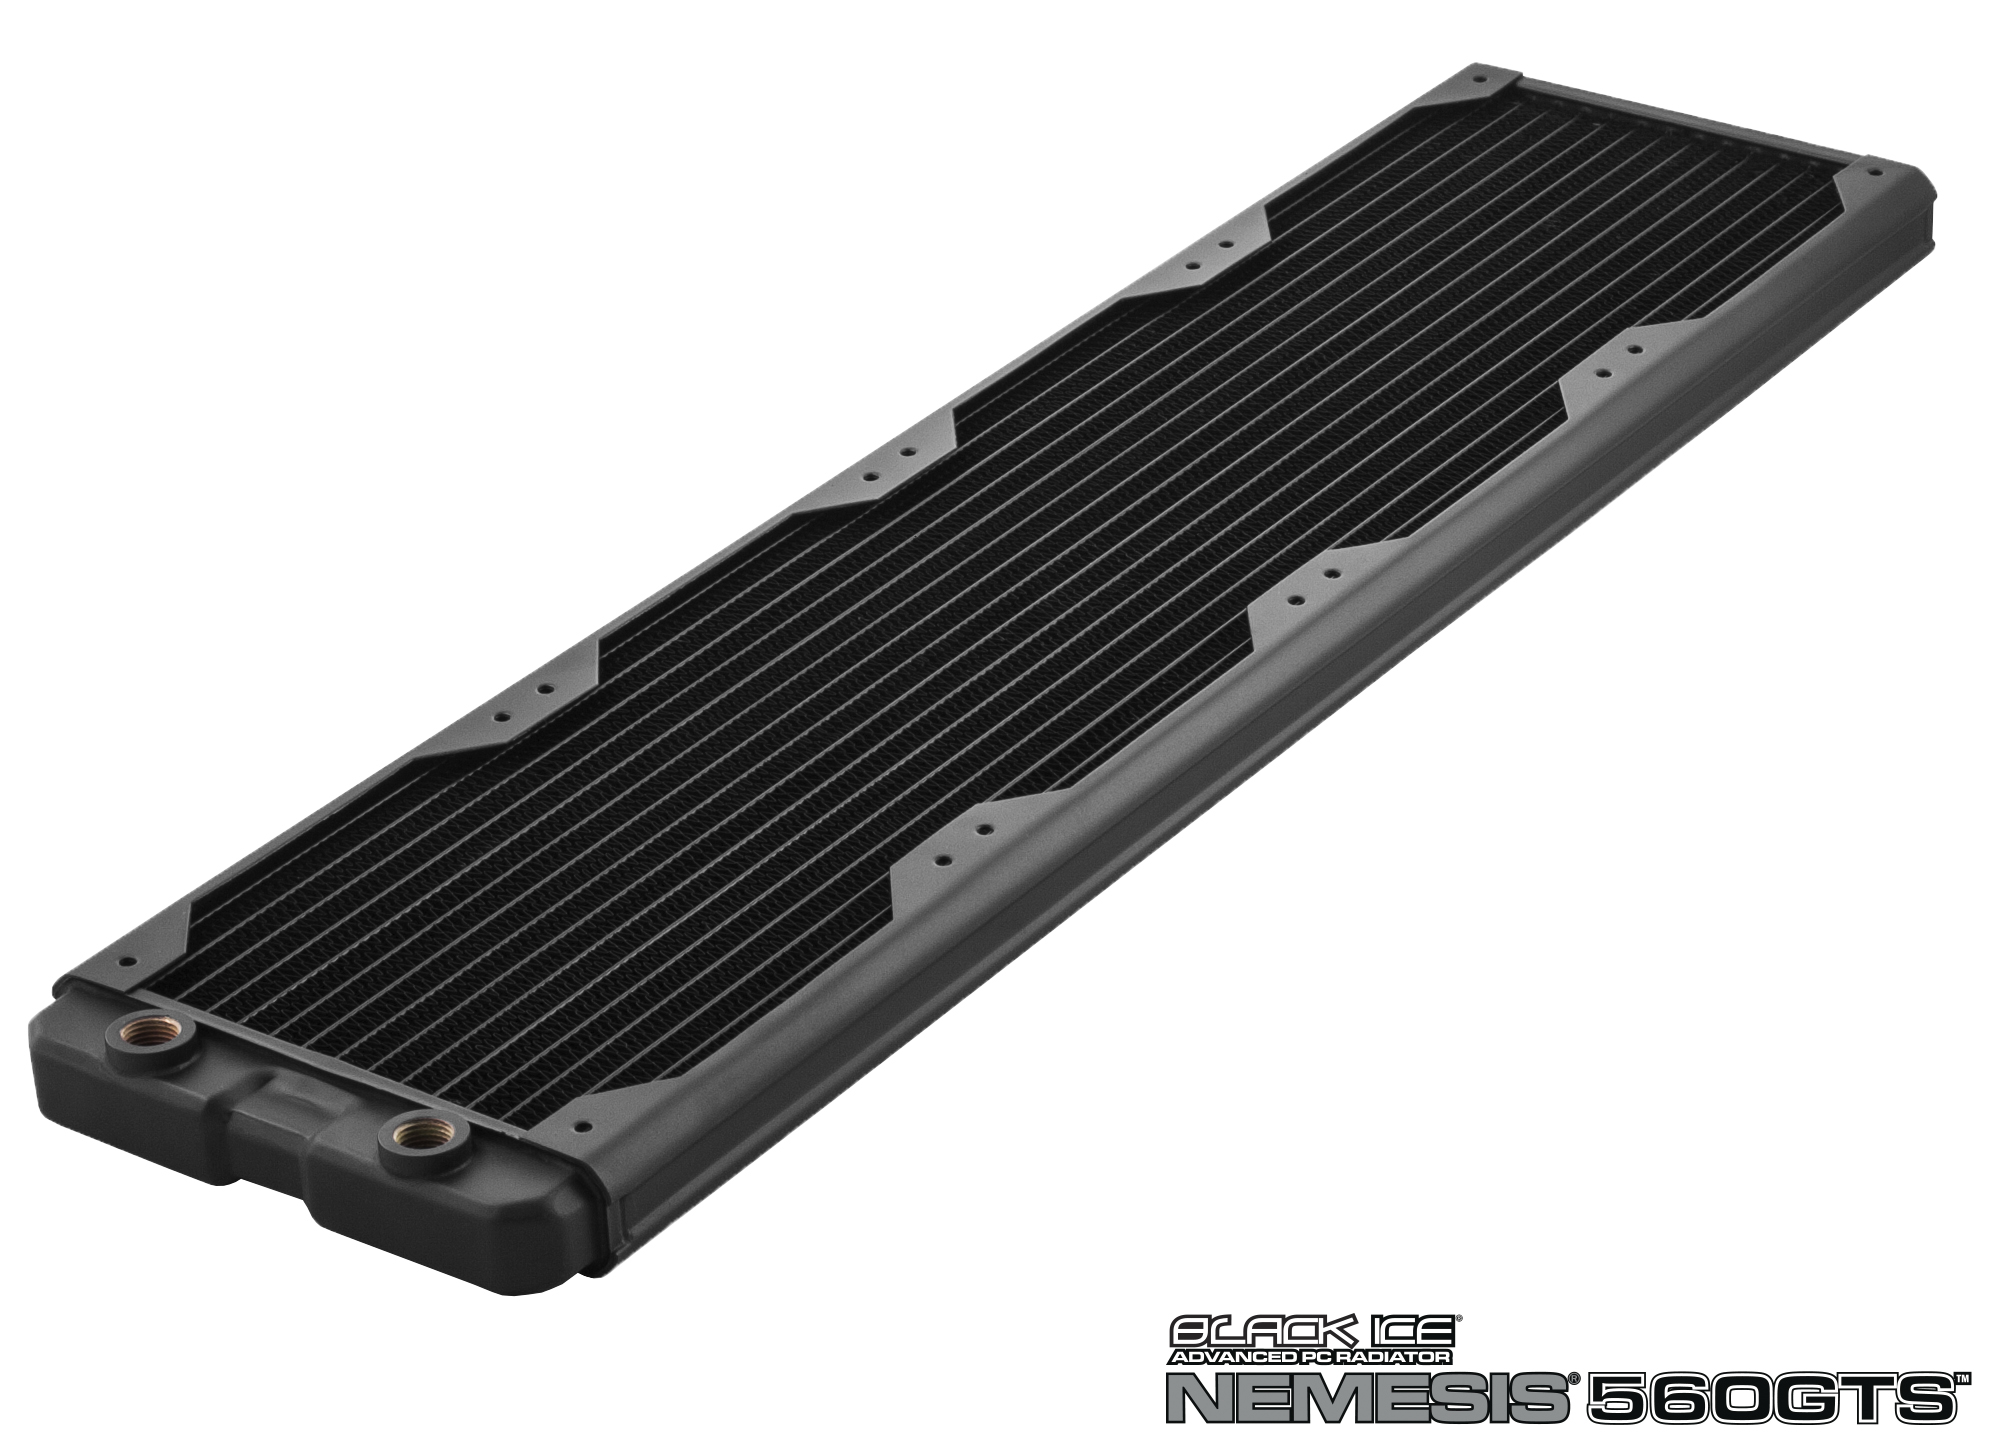 Hardware Labs - Black Ice Nemesis Radiator GTS 560 - Black